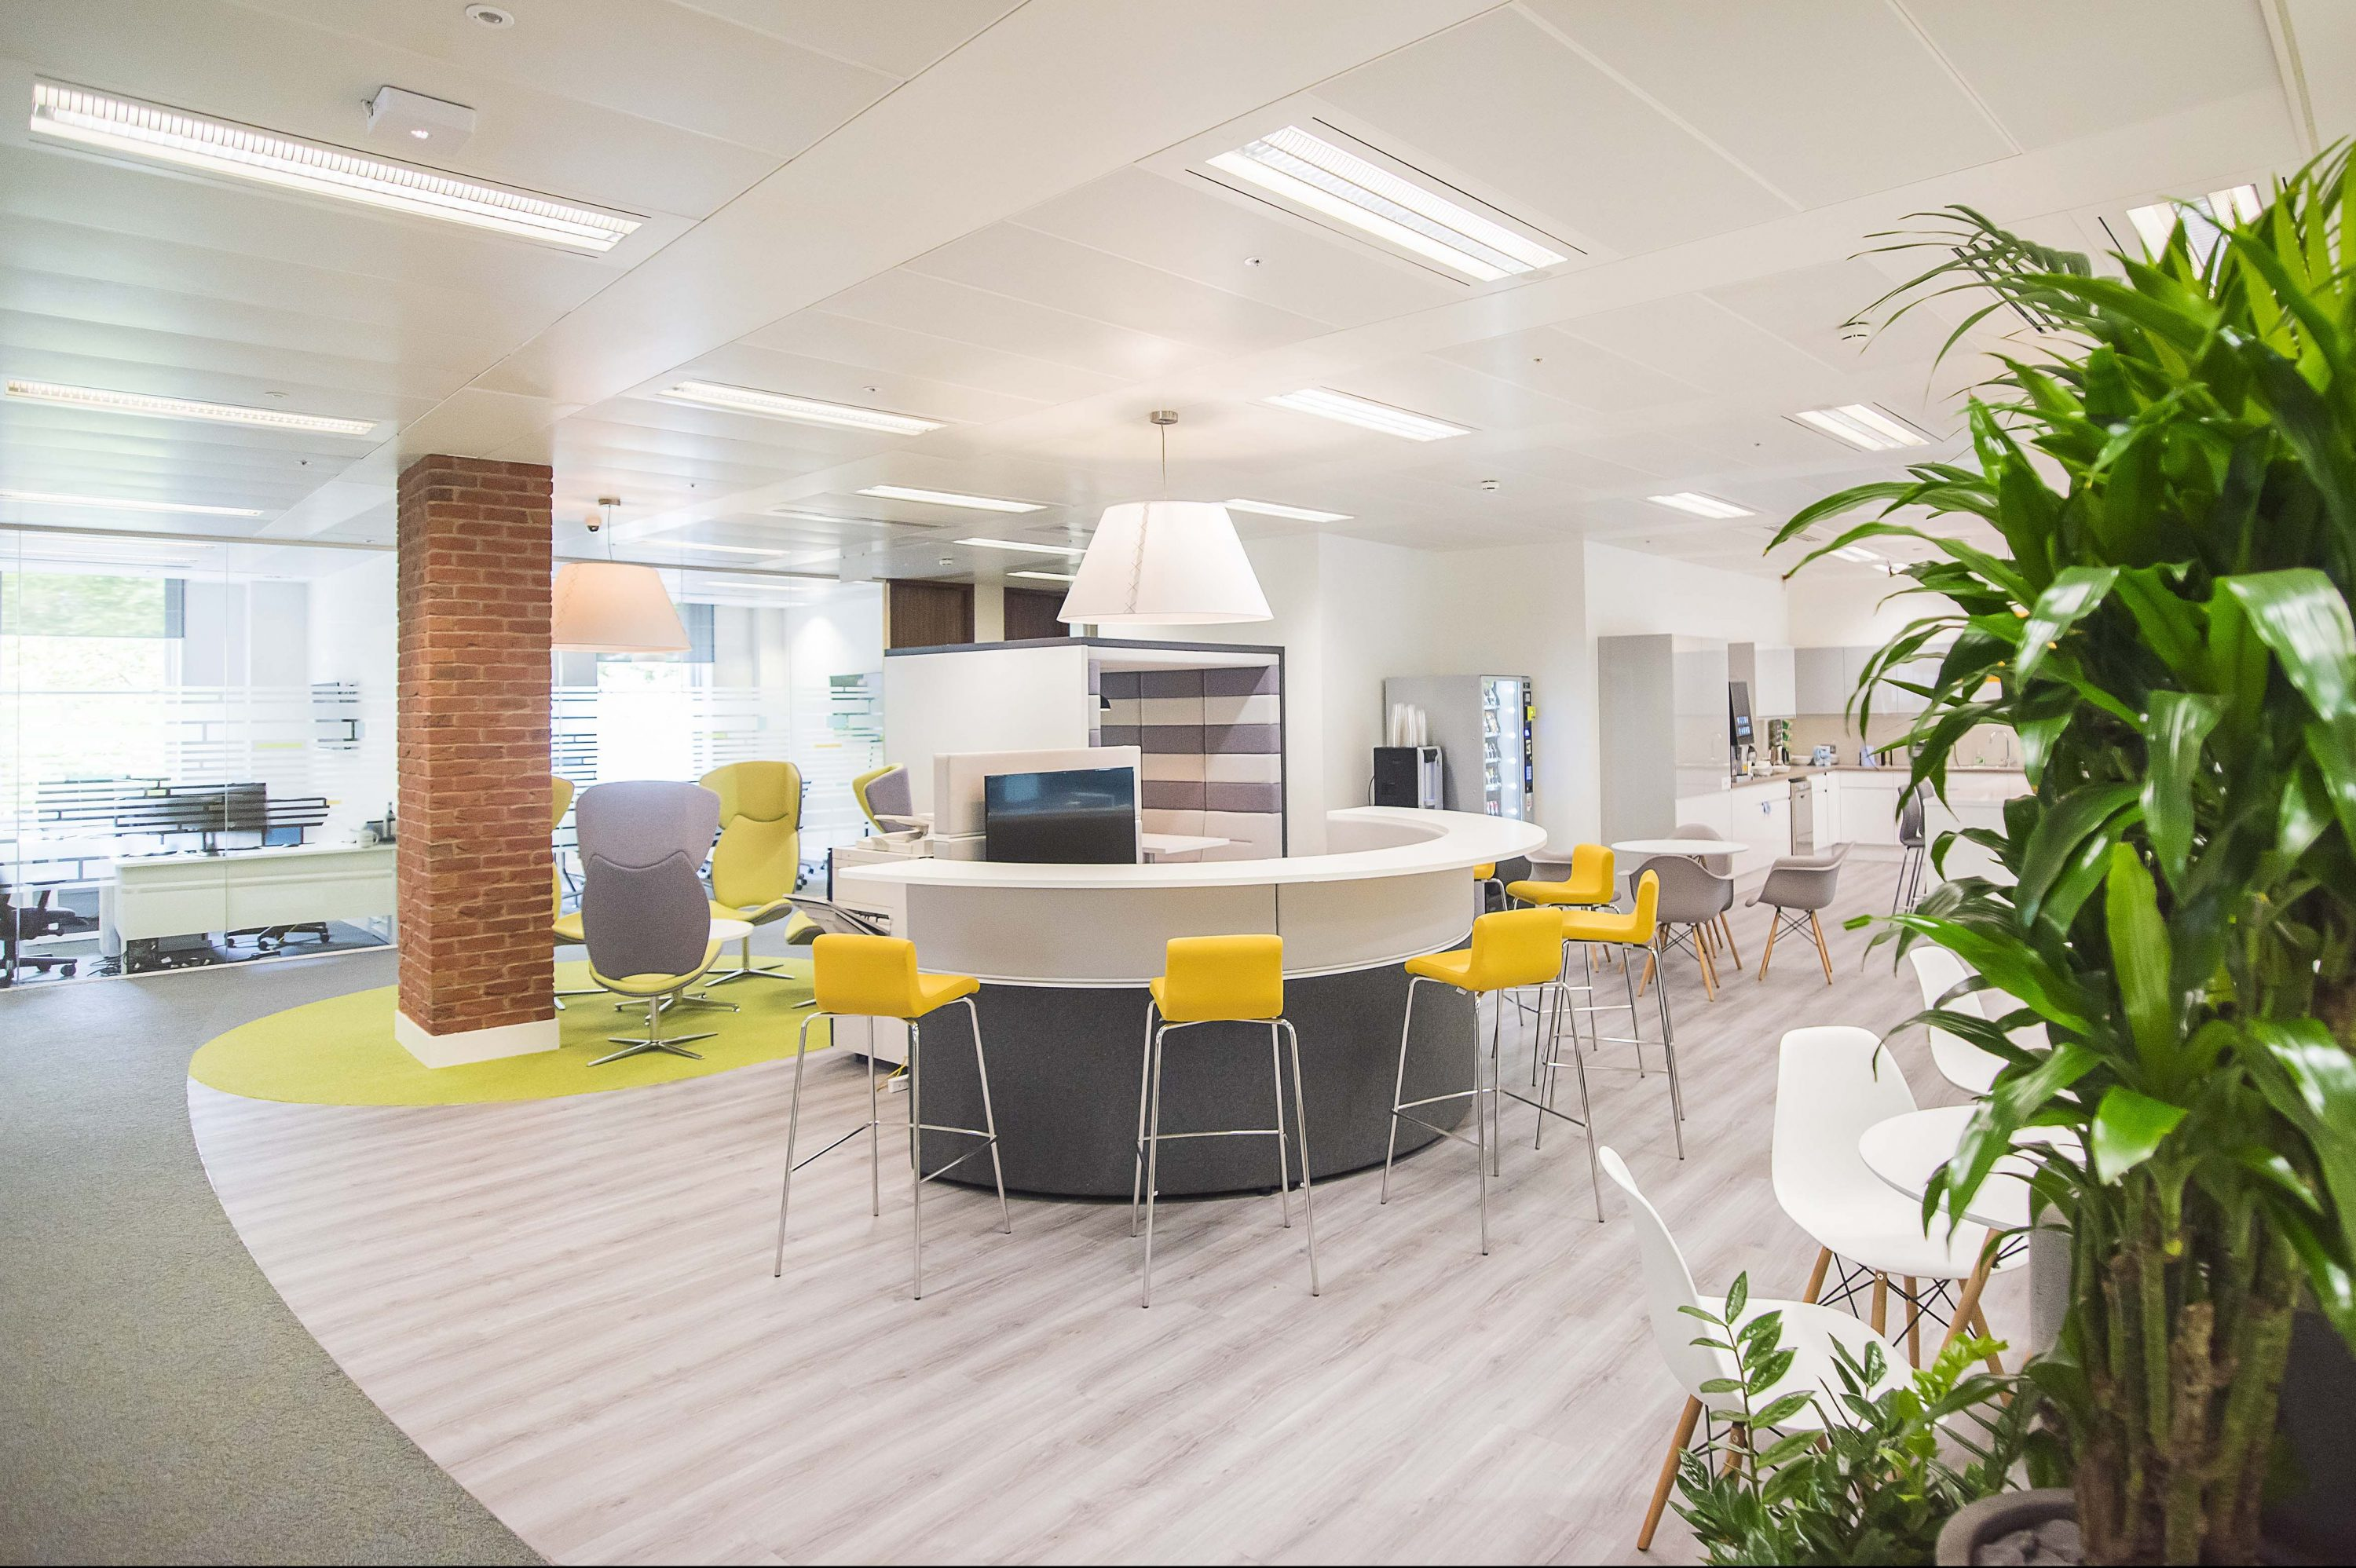 Design Trends: Office Design Trends For 2018 Focus On The Natural And